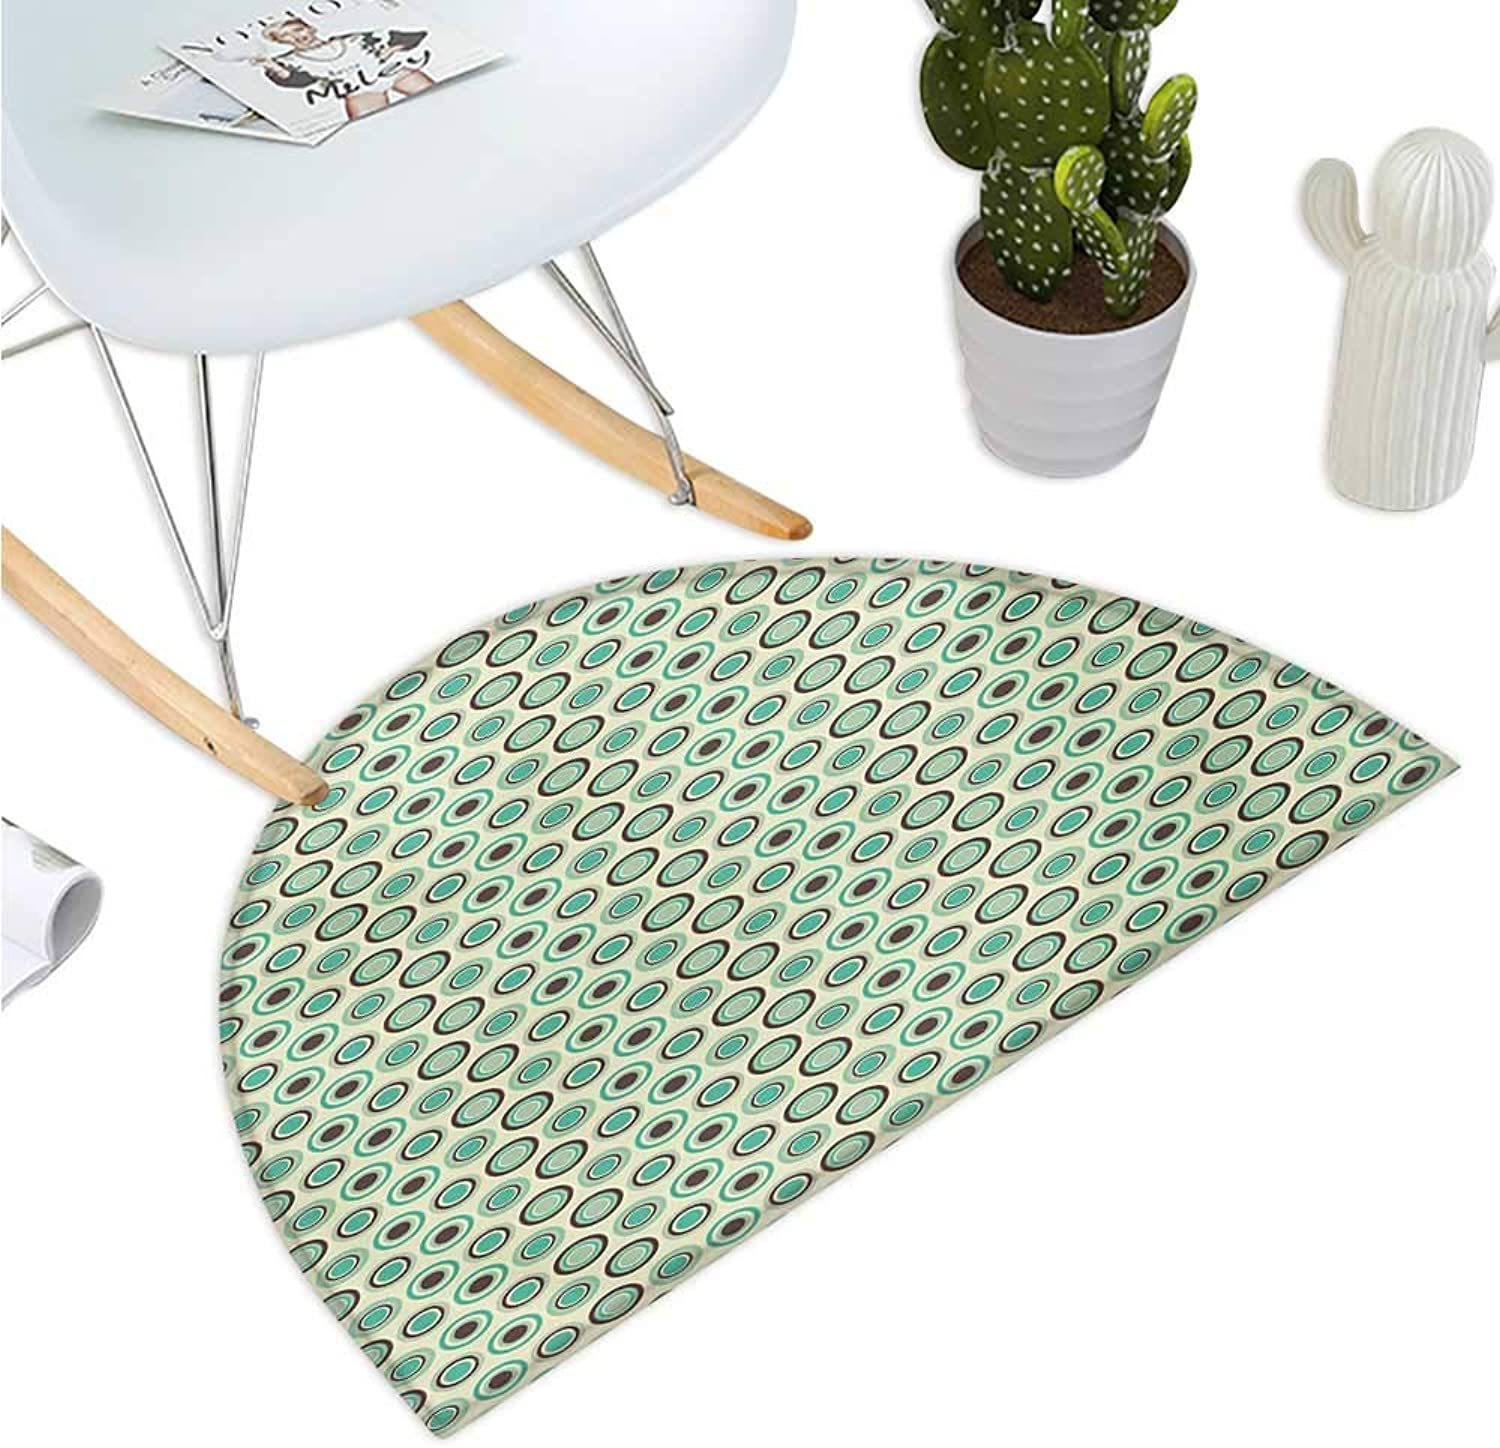 Retro Half Round Door mats Polka Dotted Pattern in Pastel colors Old Fashioned Tile Ring Shapes Bathroom Mat H 39.3  xD 59  Mint Green Dark Taupe Beige